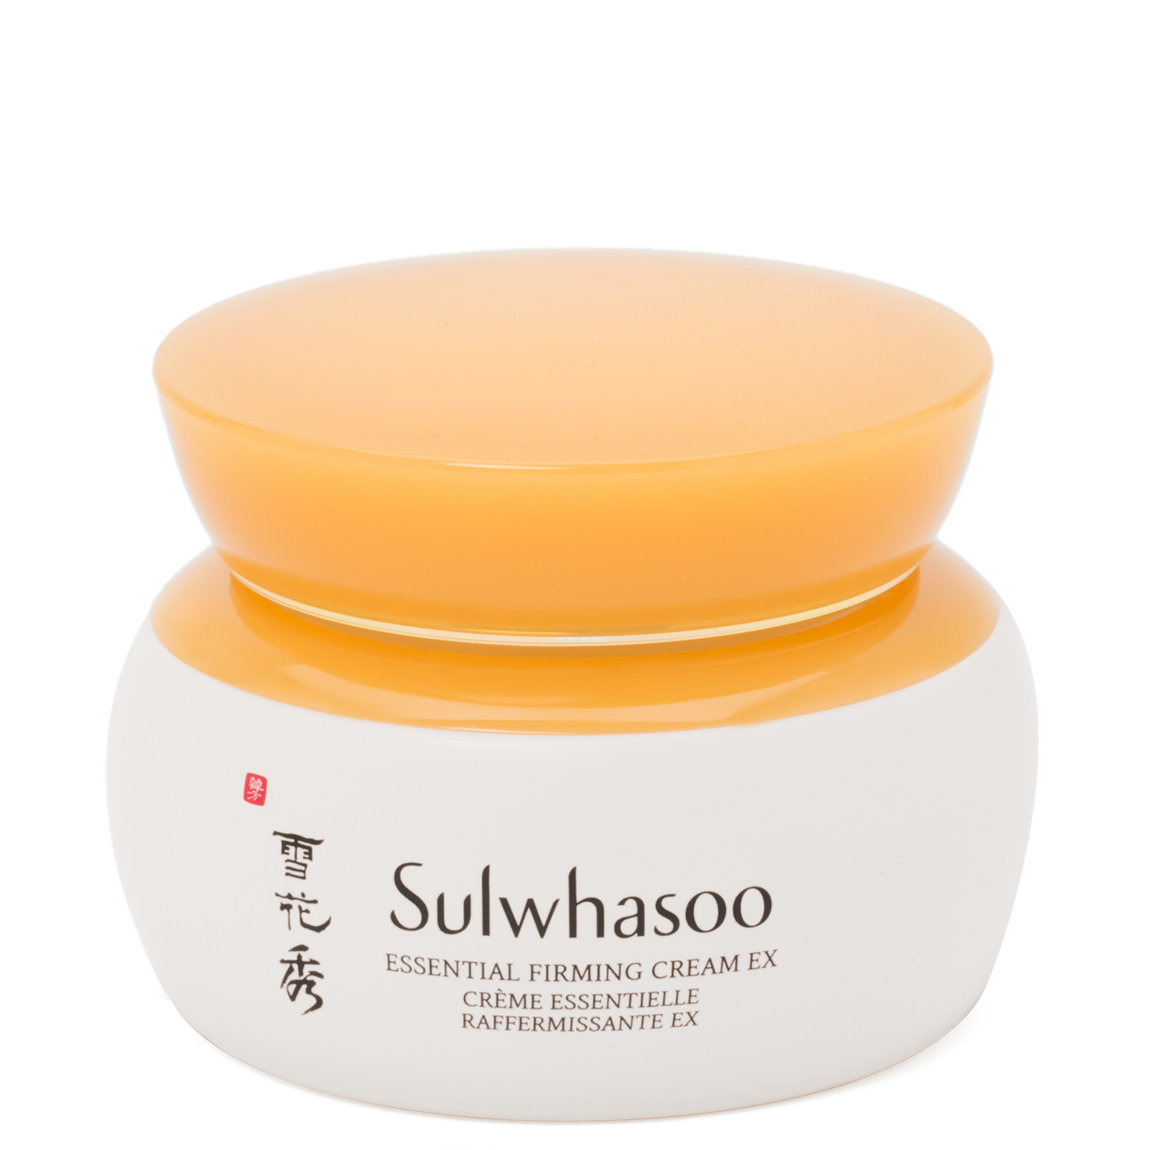 Sulwhasoo Essential Firming Cream product swatch.